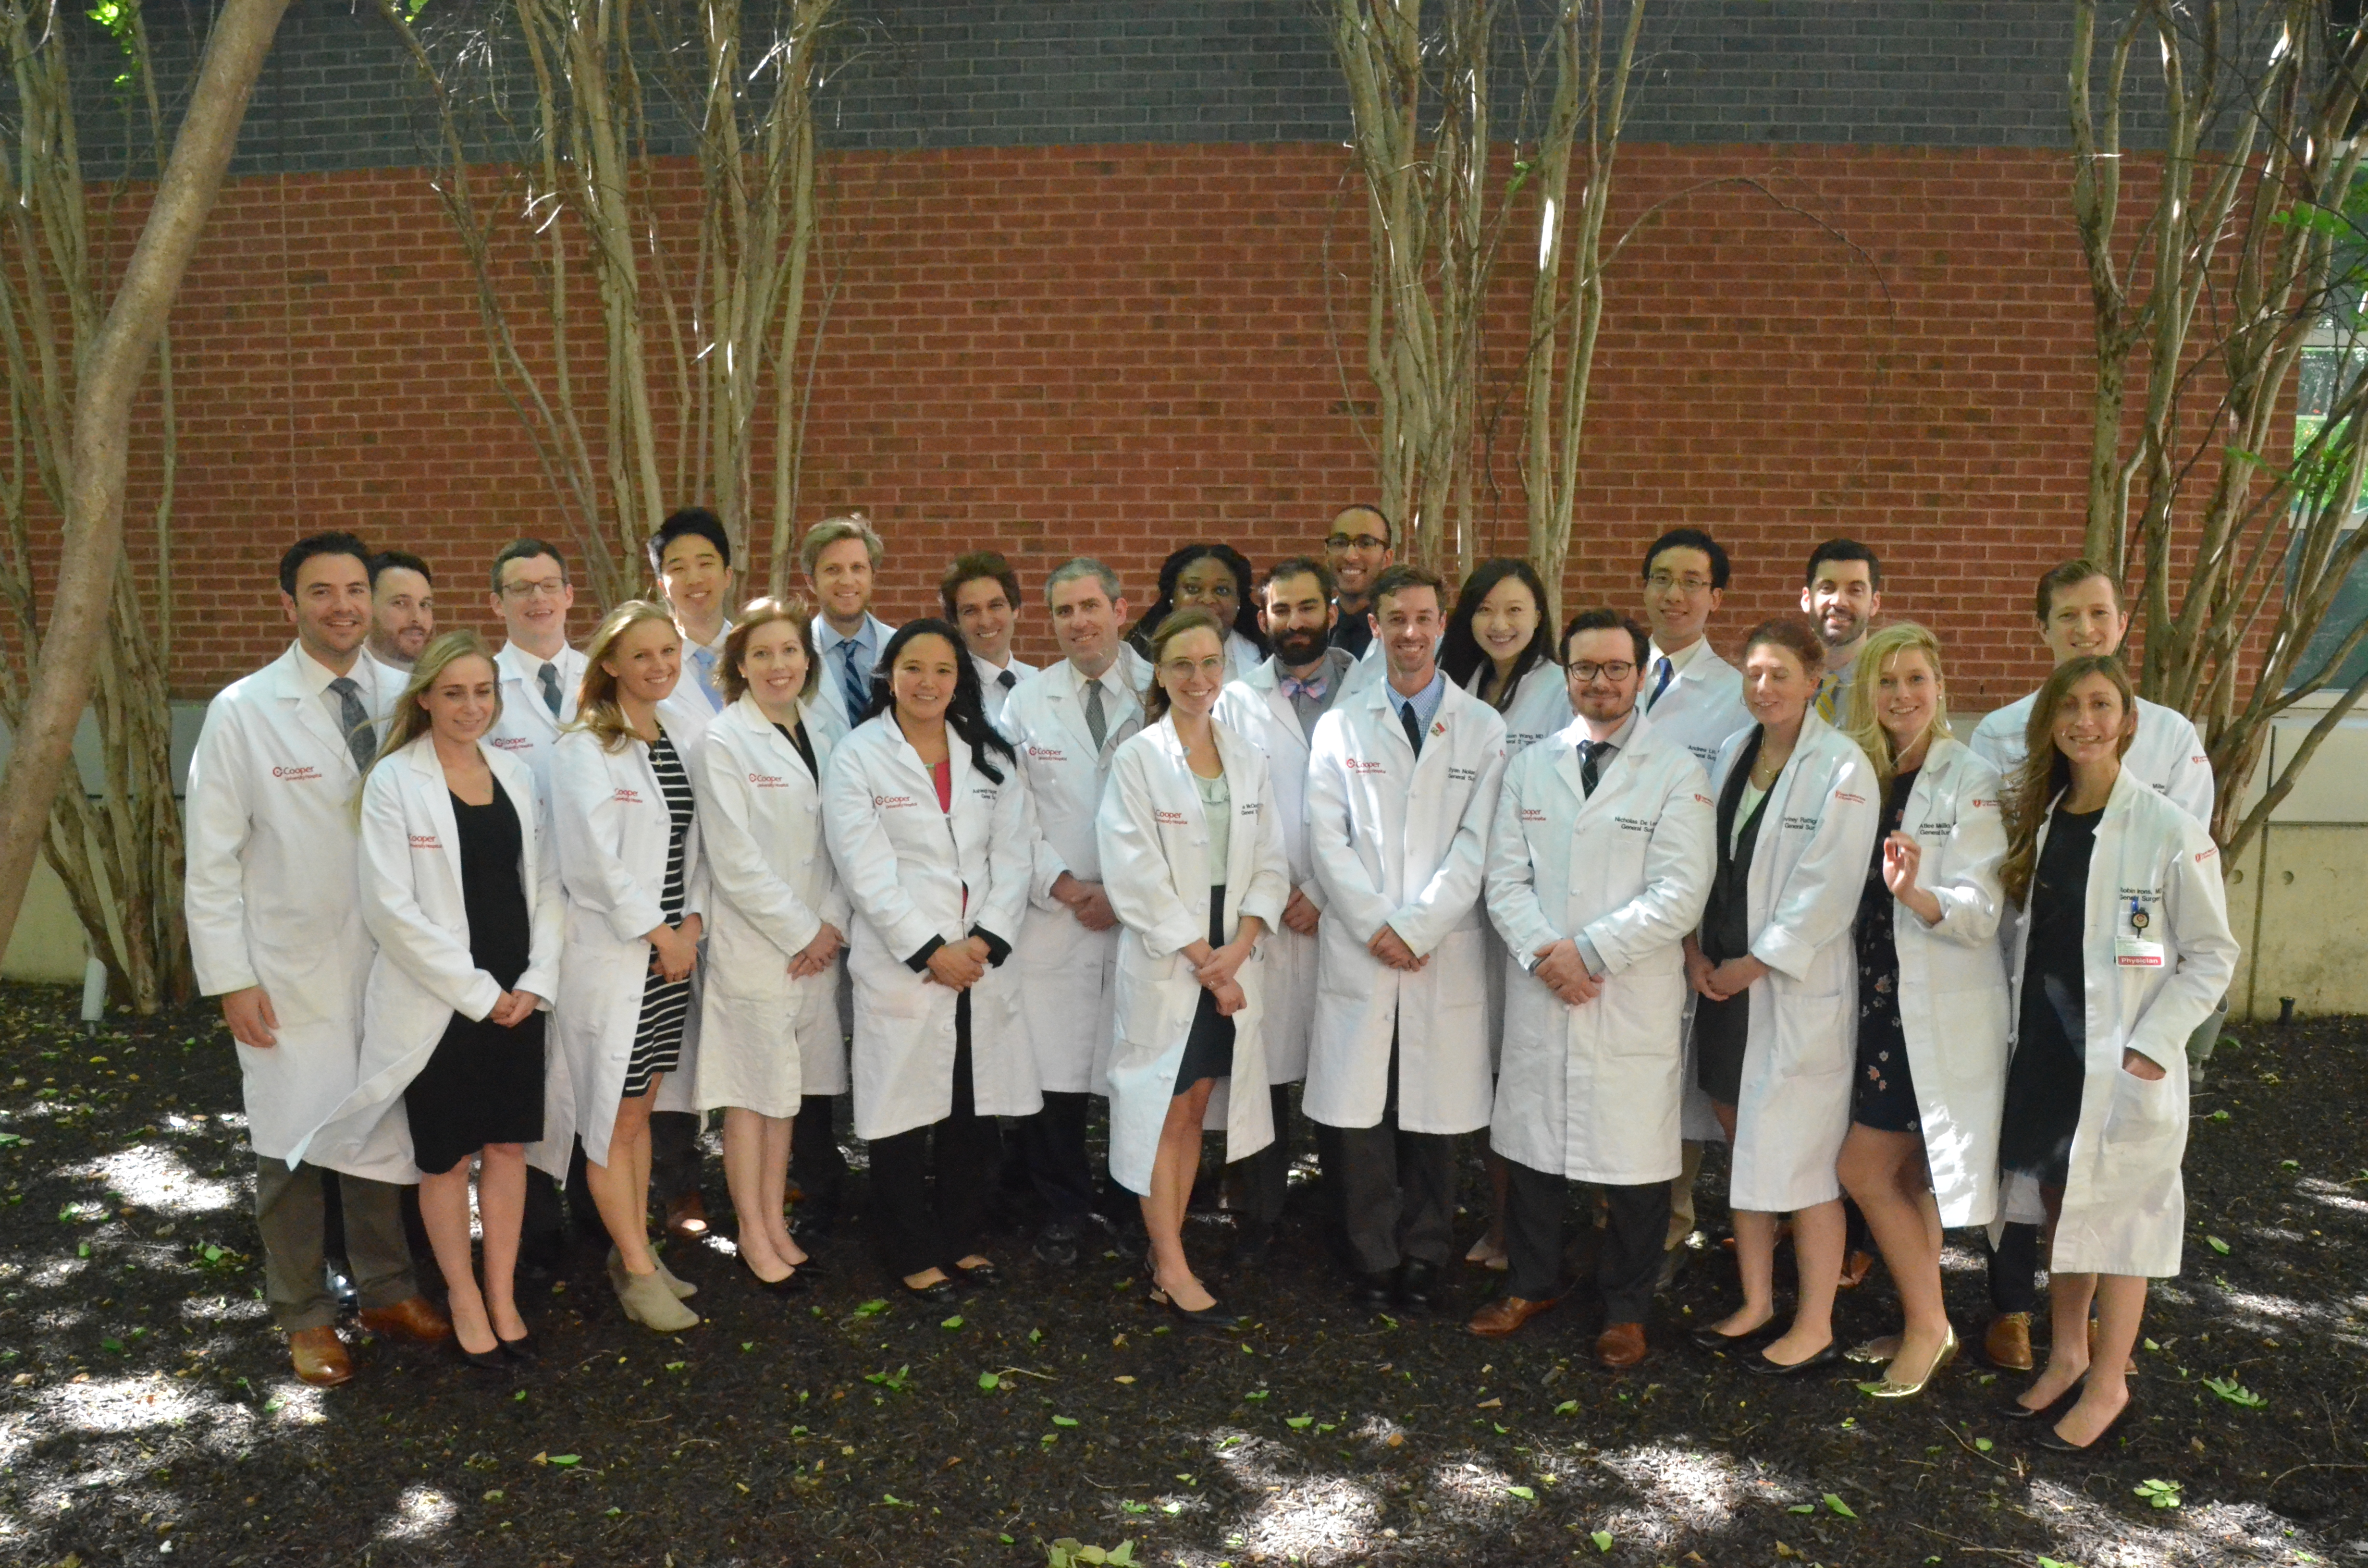 2018-2019 General Surgery Class Photo